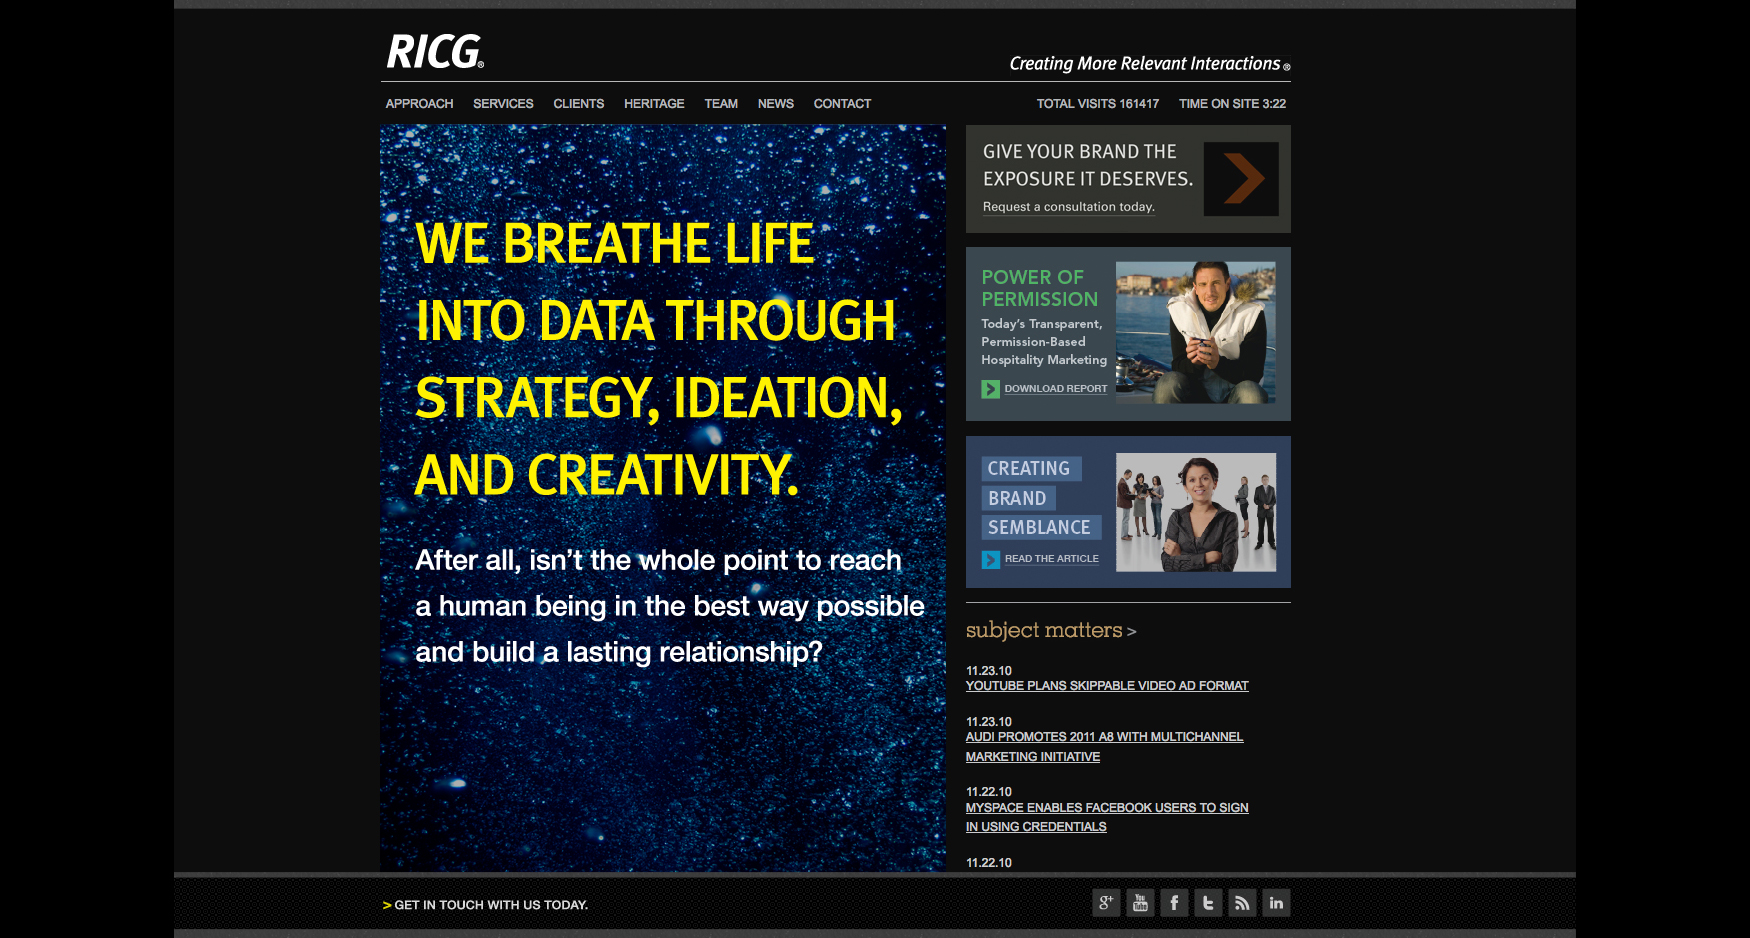 Breath Life - RICG - CORPORATE WEBSITE